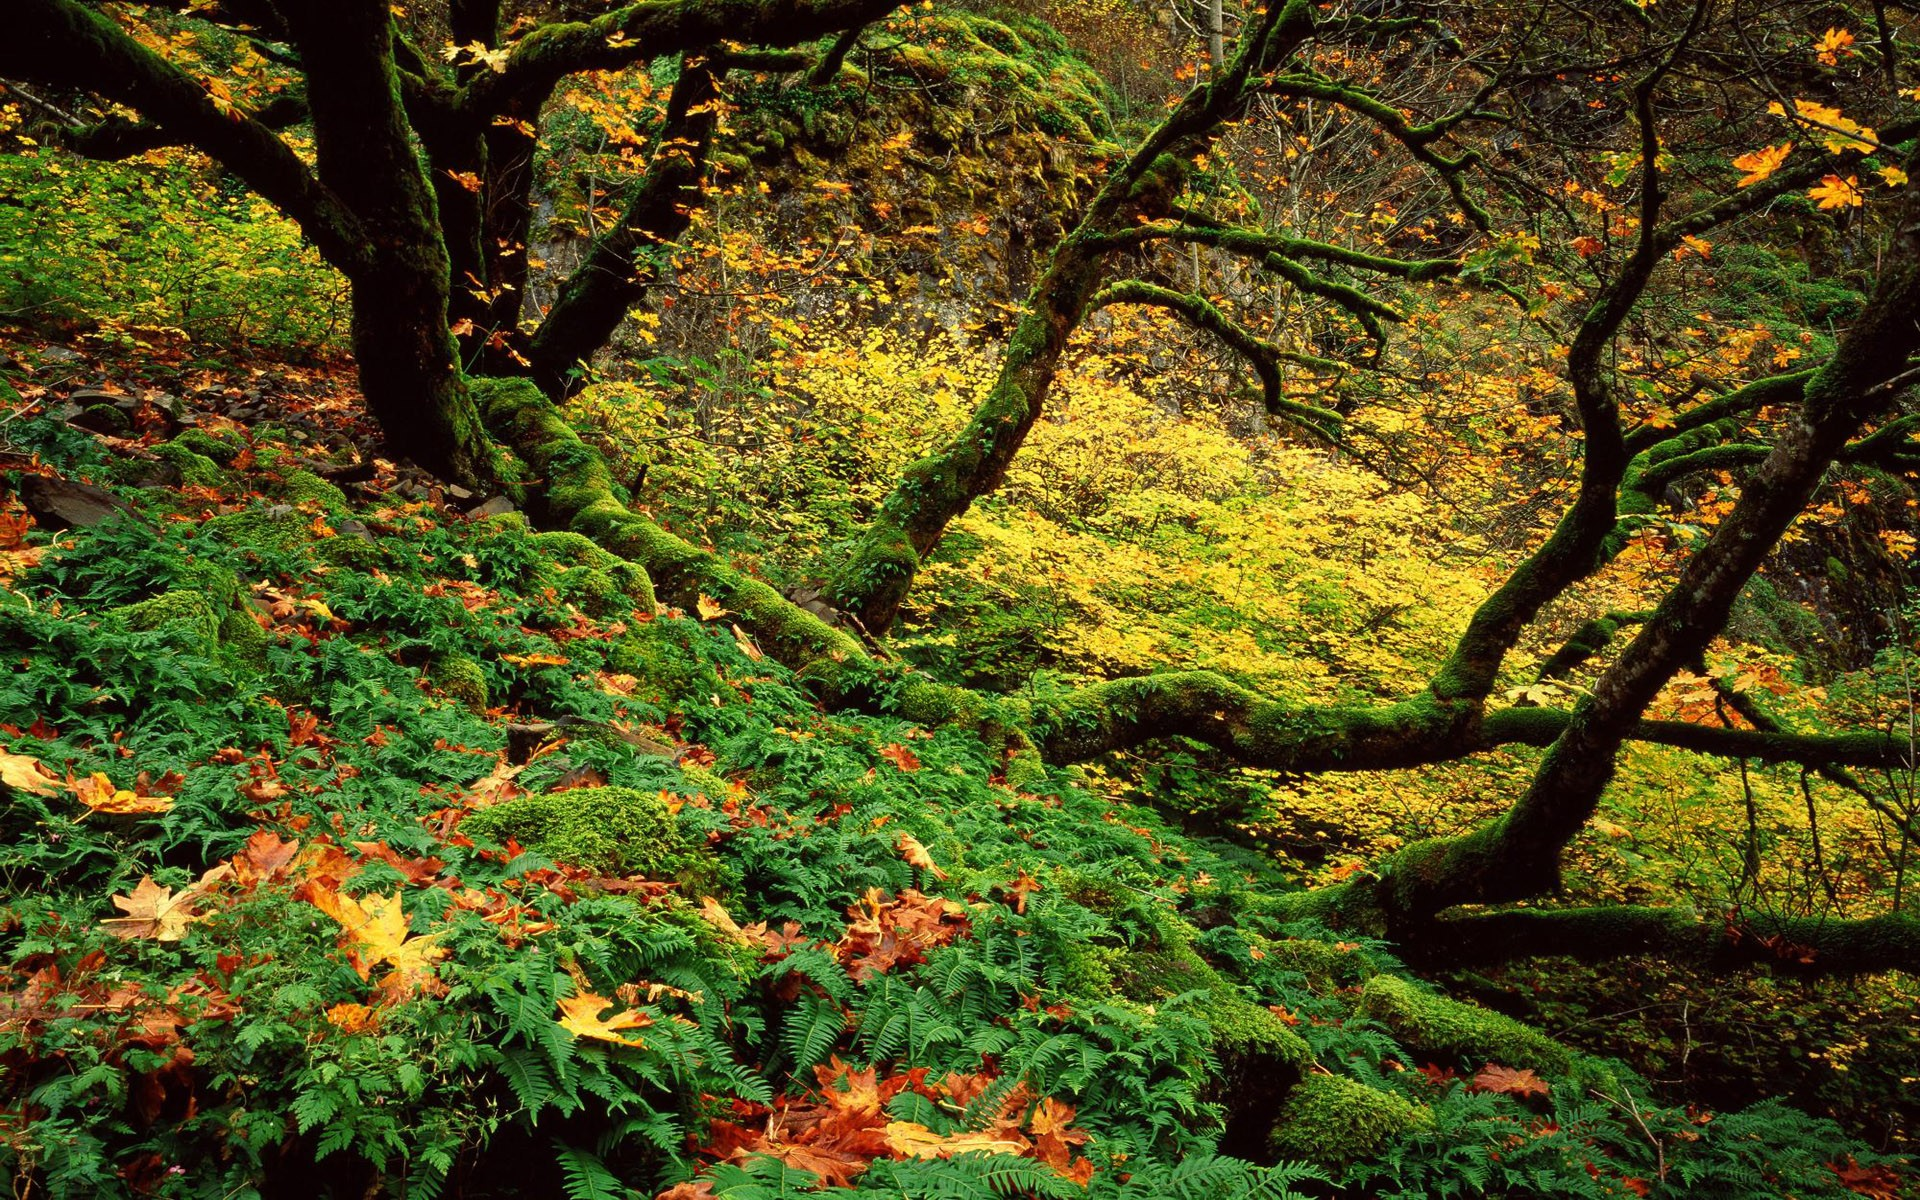 Fall Leaves Computer Wallpaper Big Leaf Maple And Ferns In Autumn Columbia River Gorge